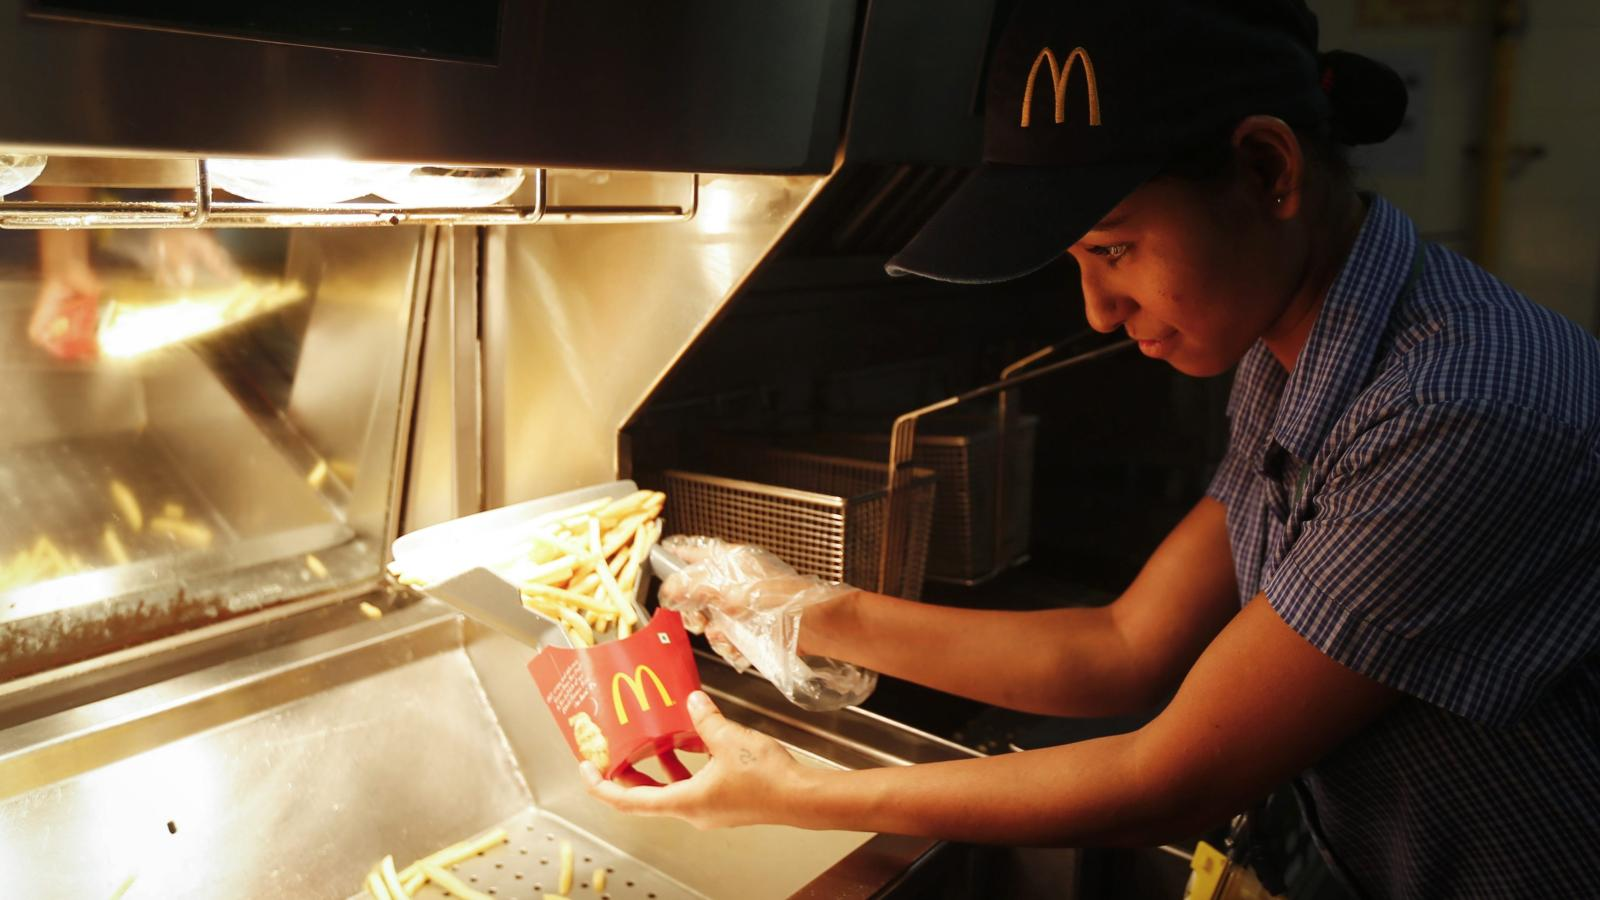 Mcdonalds In India 20 Of Franchises Shuttered After A Showdown